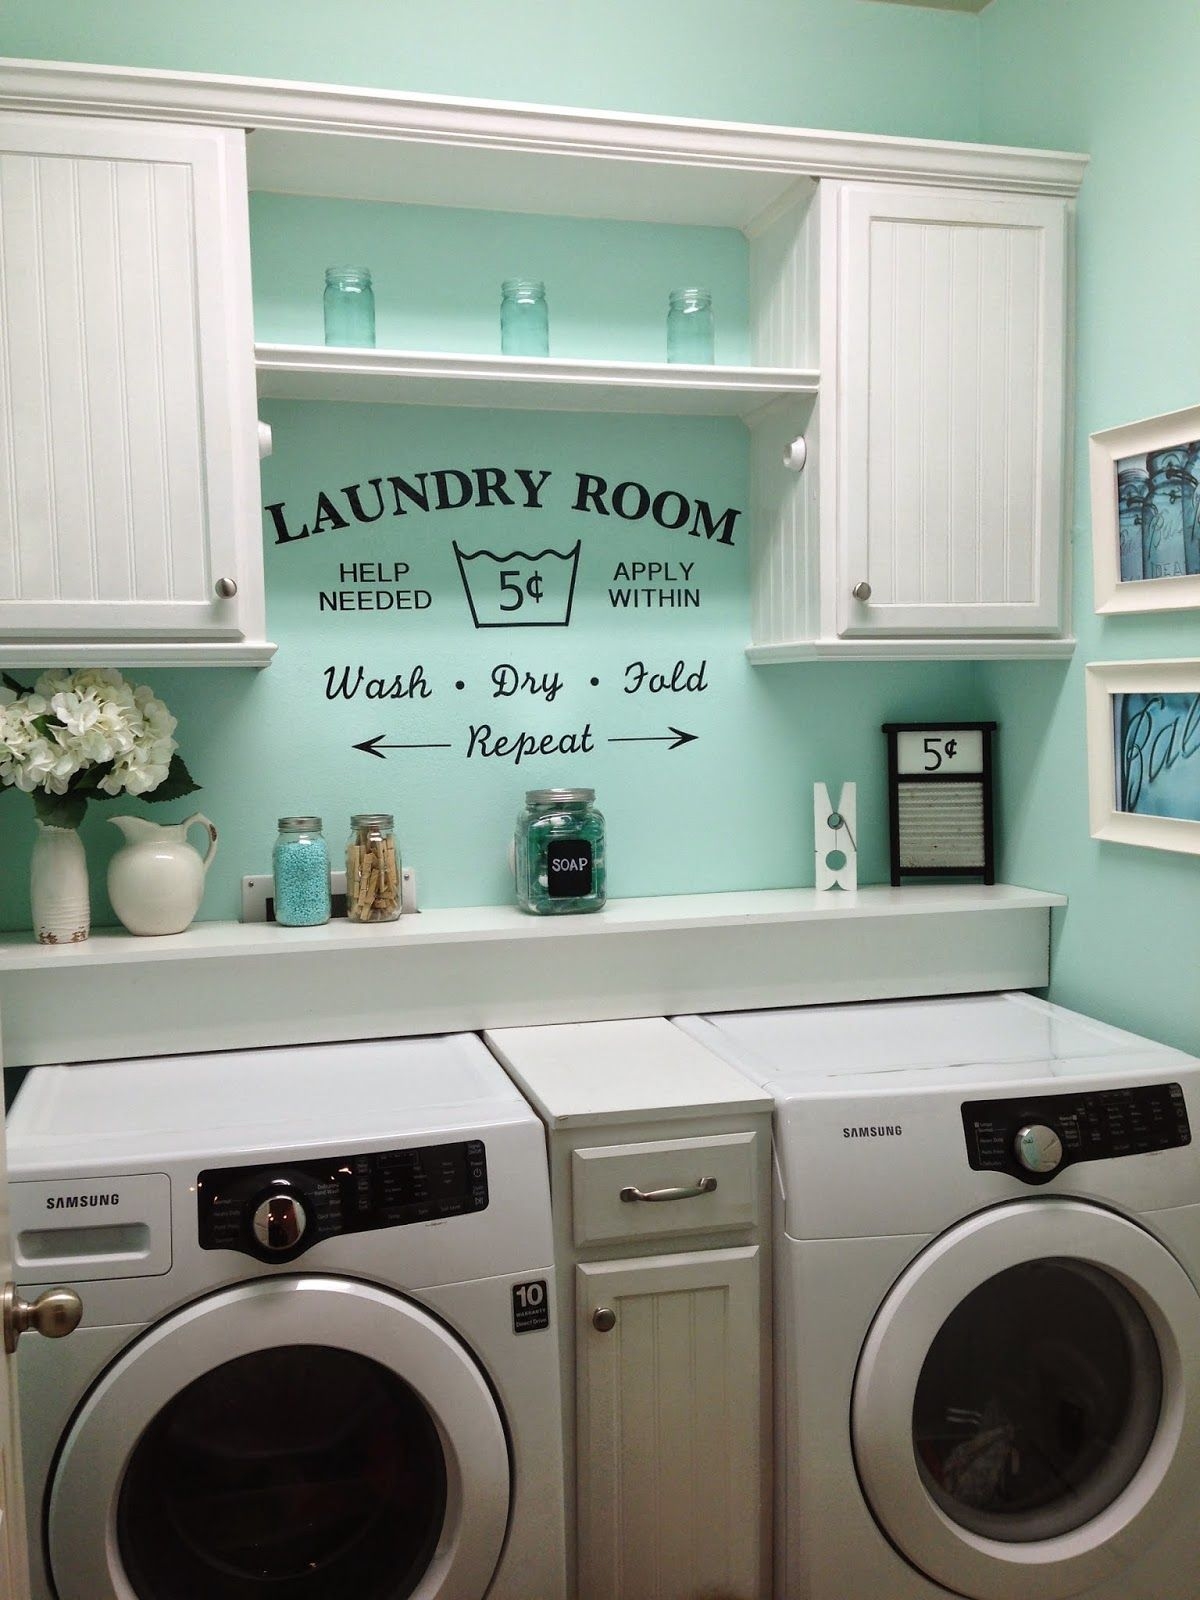 Rustic Shabby Chic Laundry Room Vintage Vinyl Decal Small